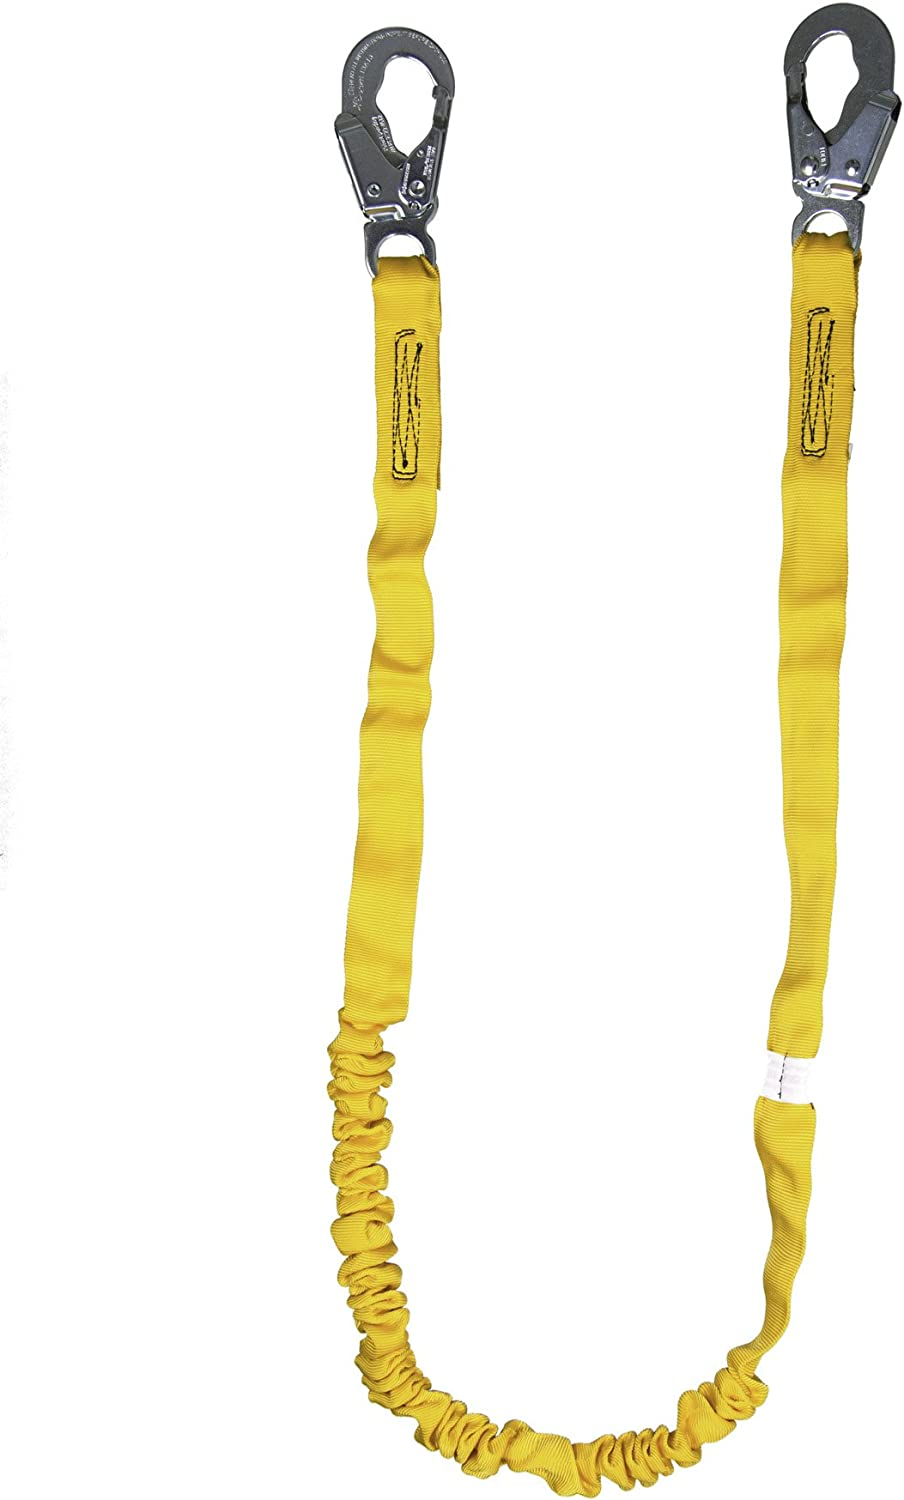 Guardian Fall Protection 11200 IS-72 6-Foot Internal Shock Lanyard with snap hooks - Fall Arrest Restraint Ropes And Lanyards -